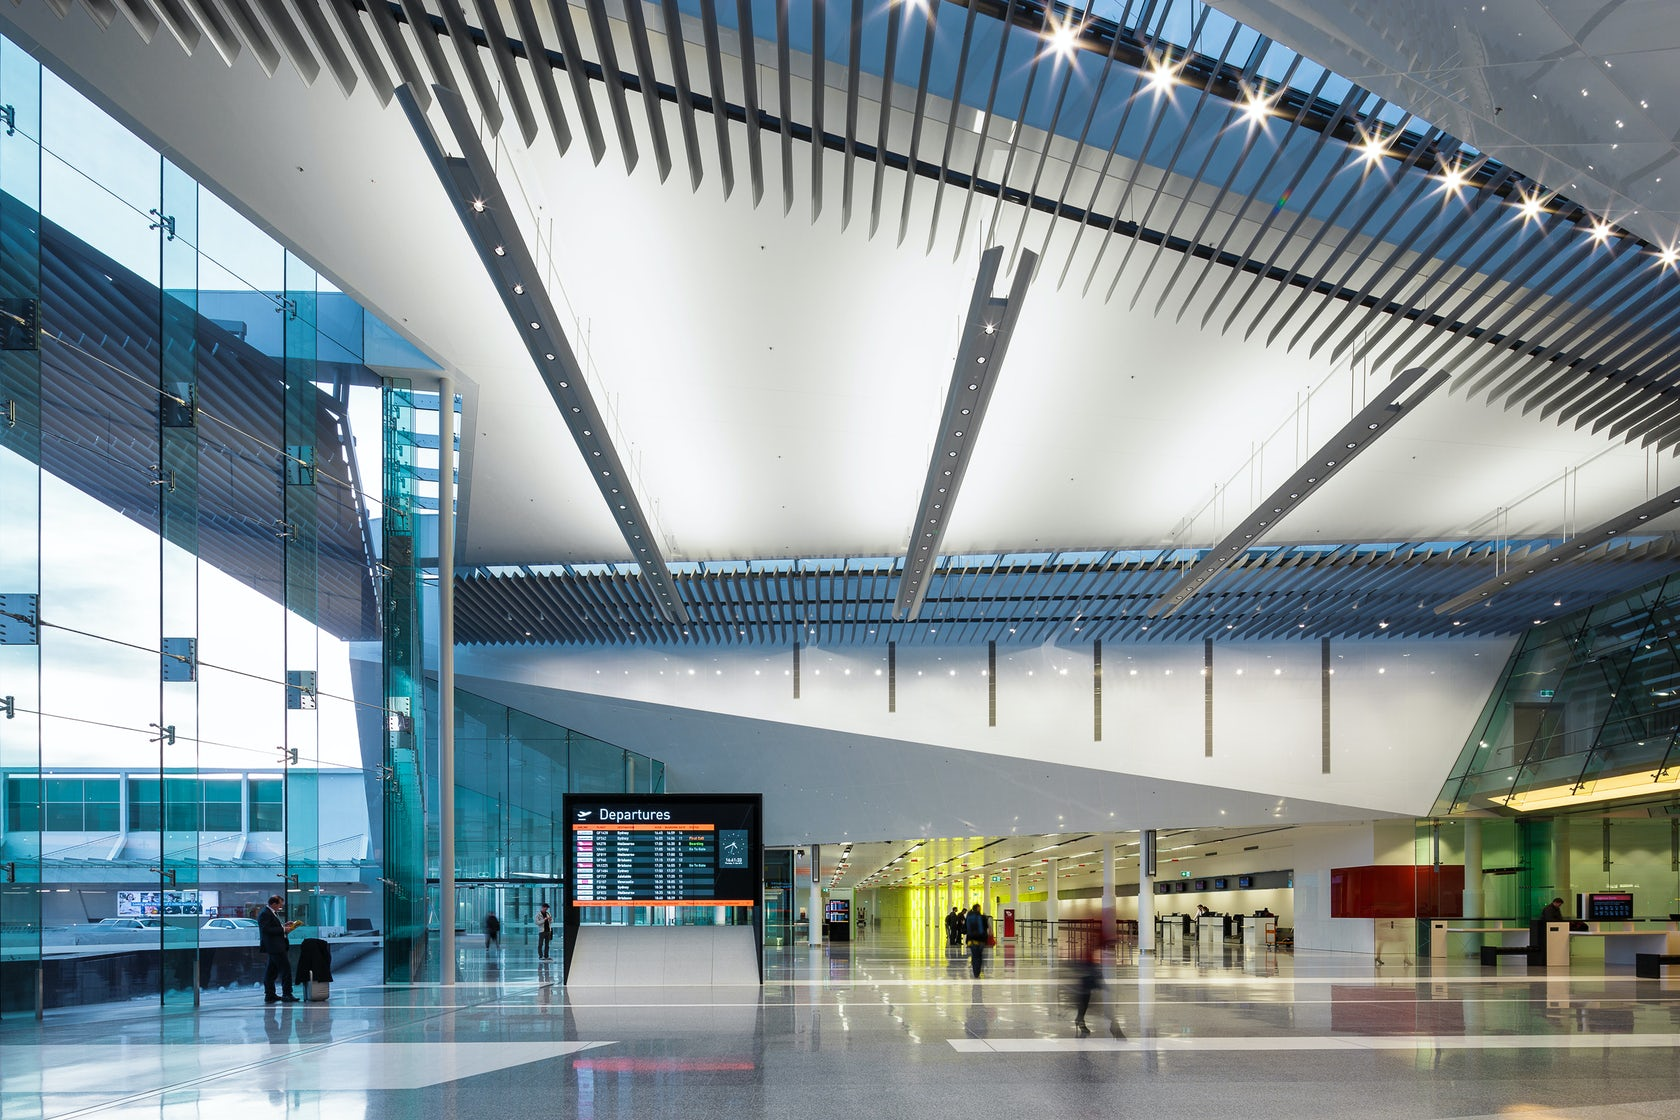 Canberra international airport architizer for Architecture firms canberra